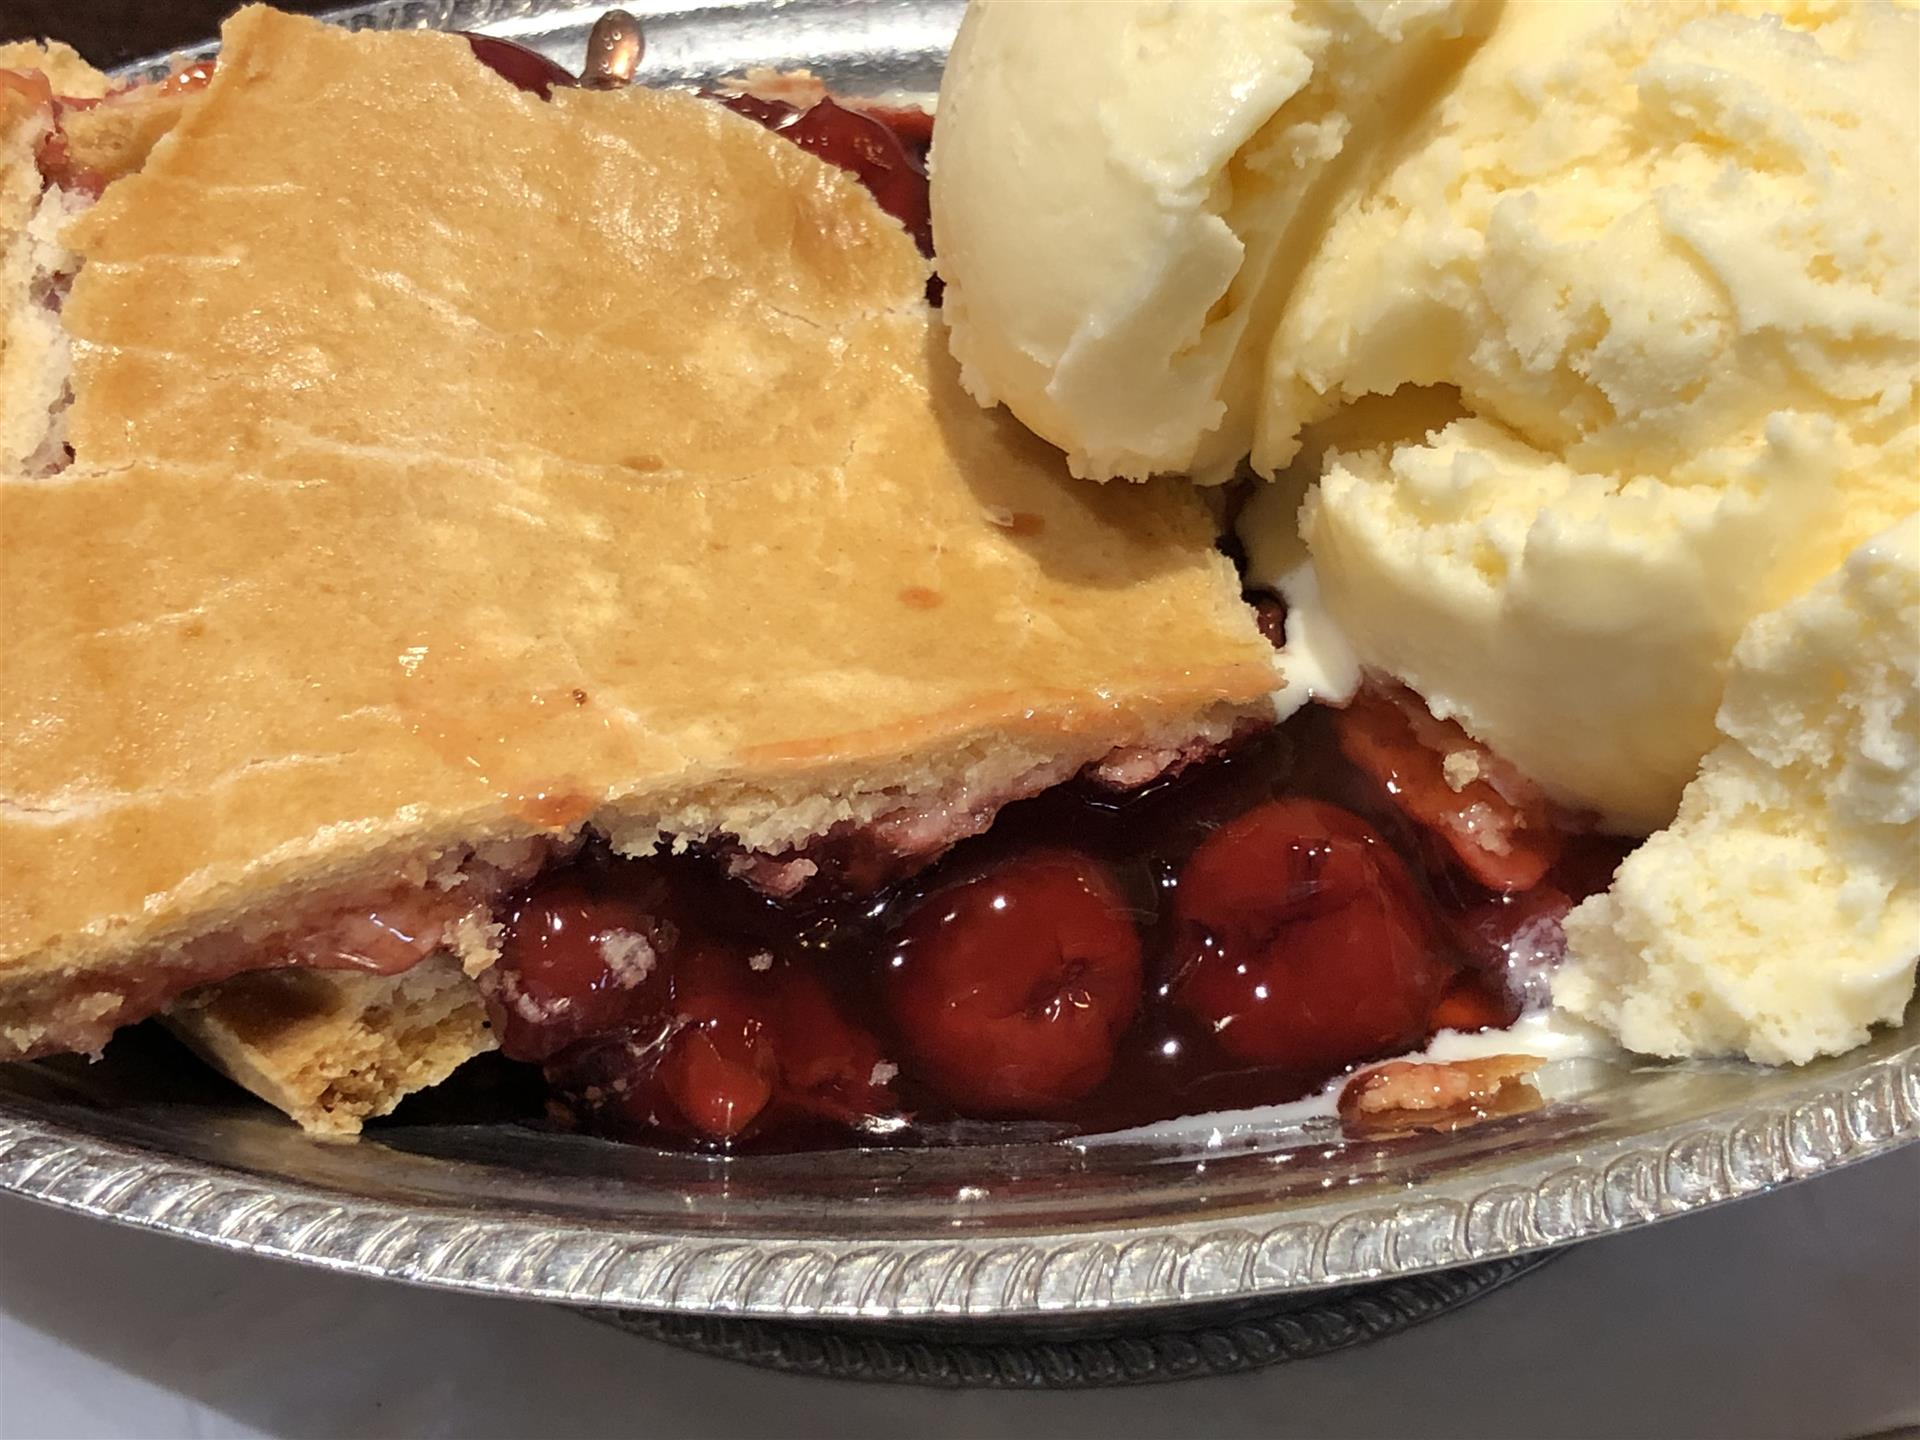 Cherry Pie with vanilla icecream